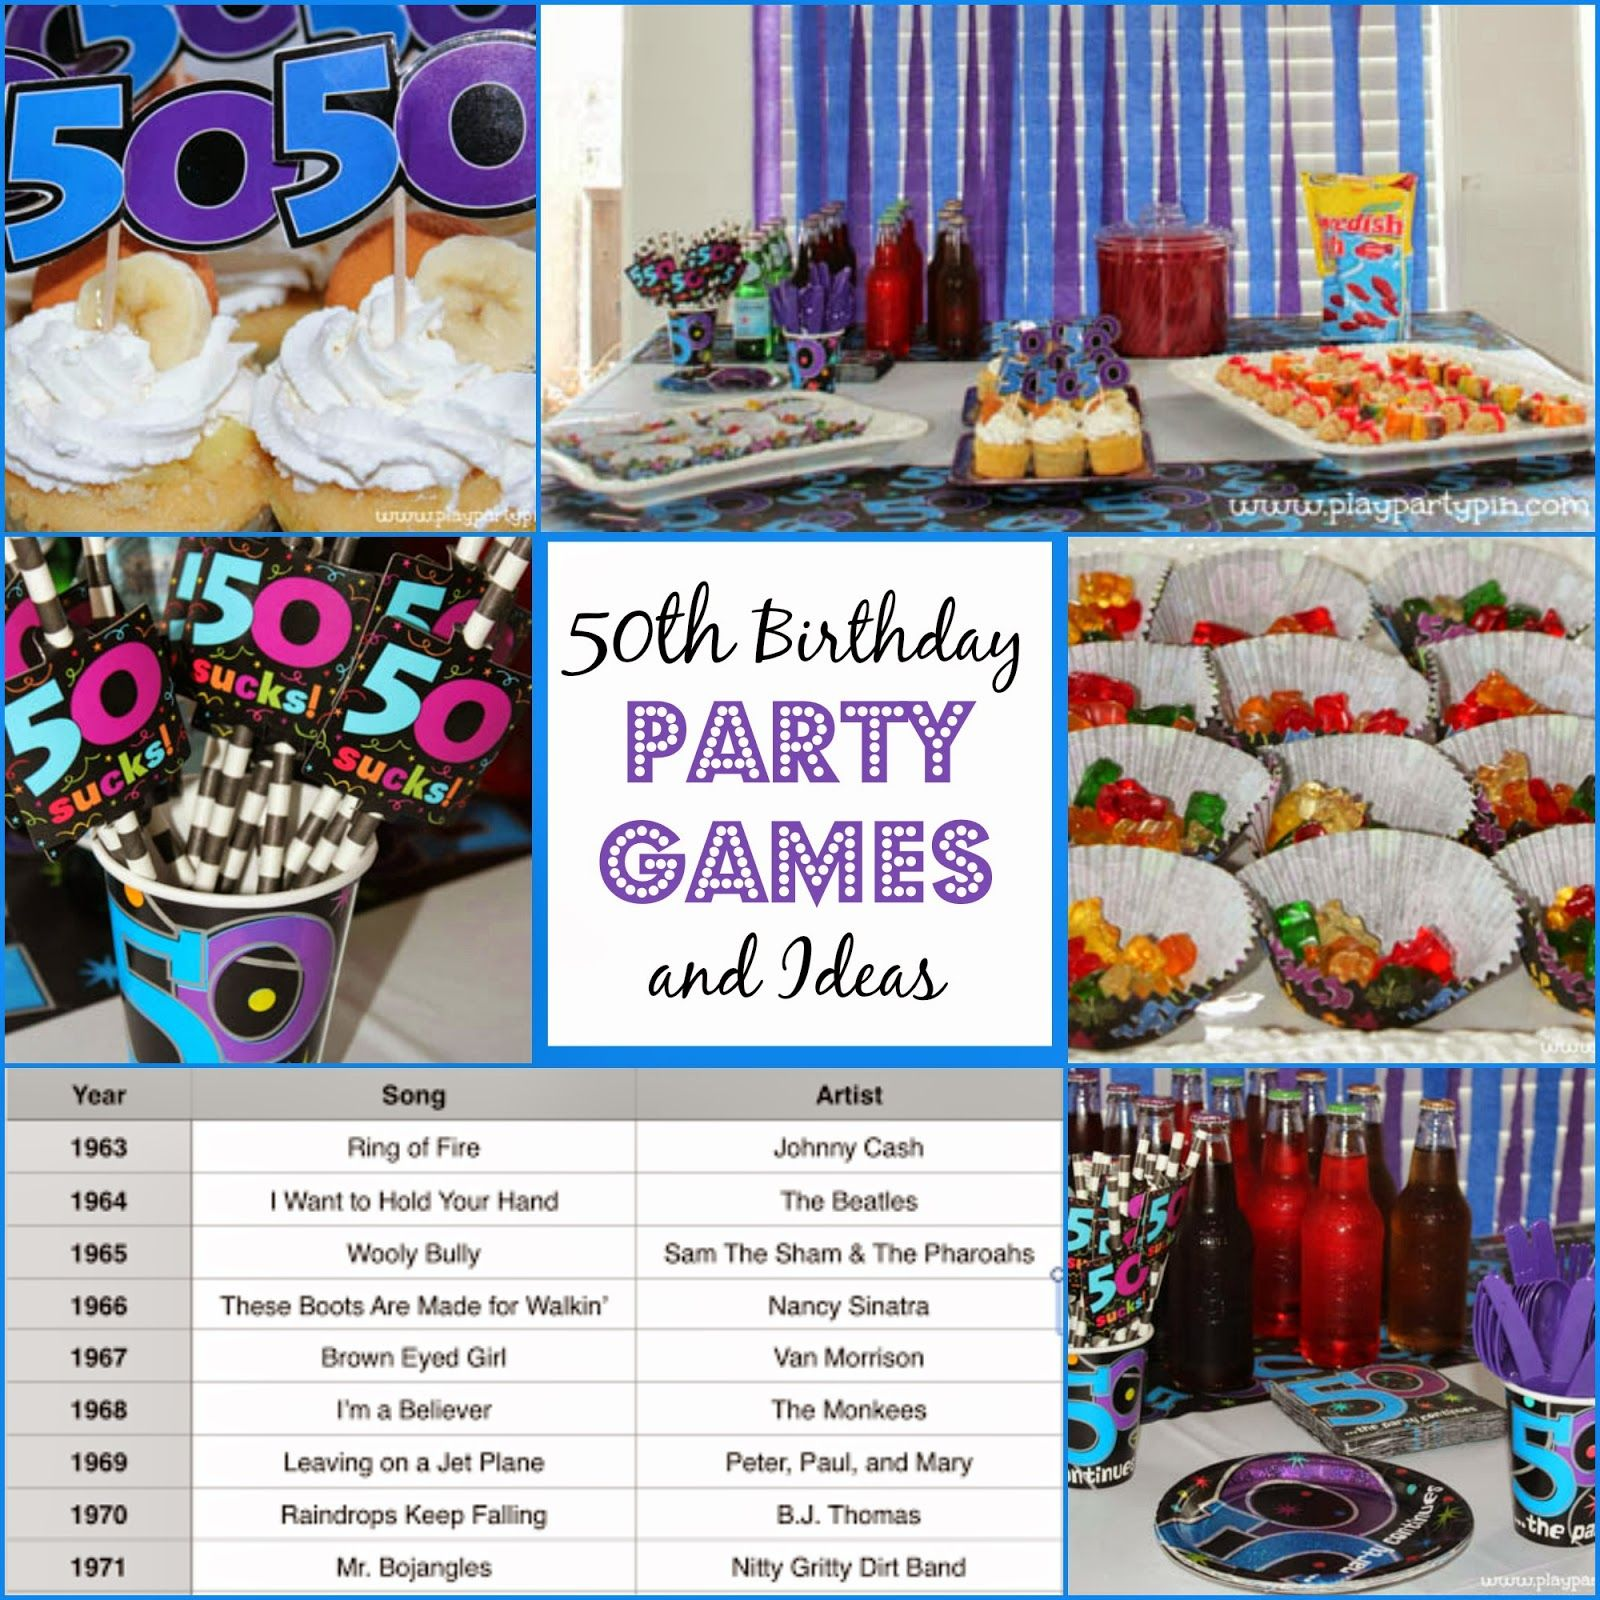 The Best 50th Birthday Party Ideas Games, Decorations